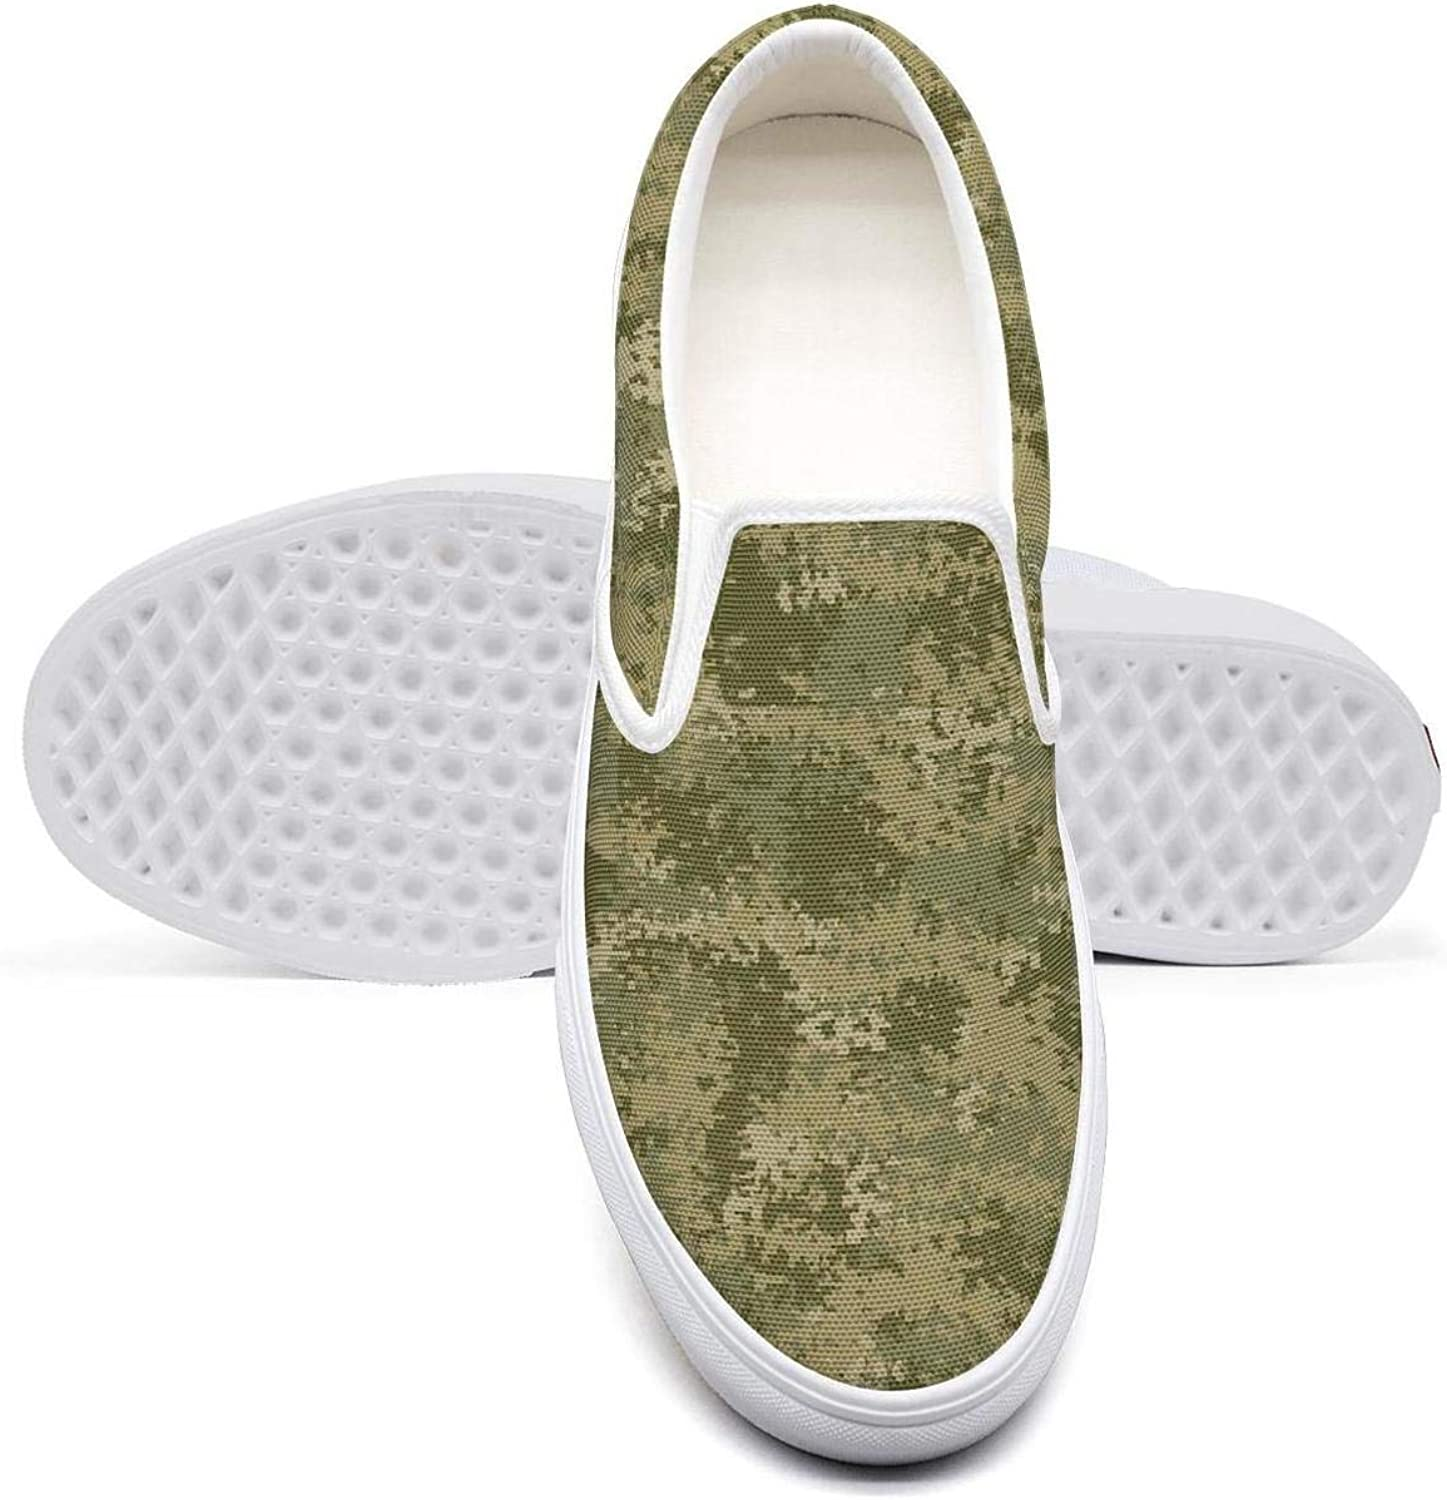 OIPVBDSEXZ Leaf Desert camo Women Casual Sneaker Fashion shoes Breathable Walking shoes